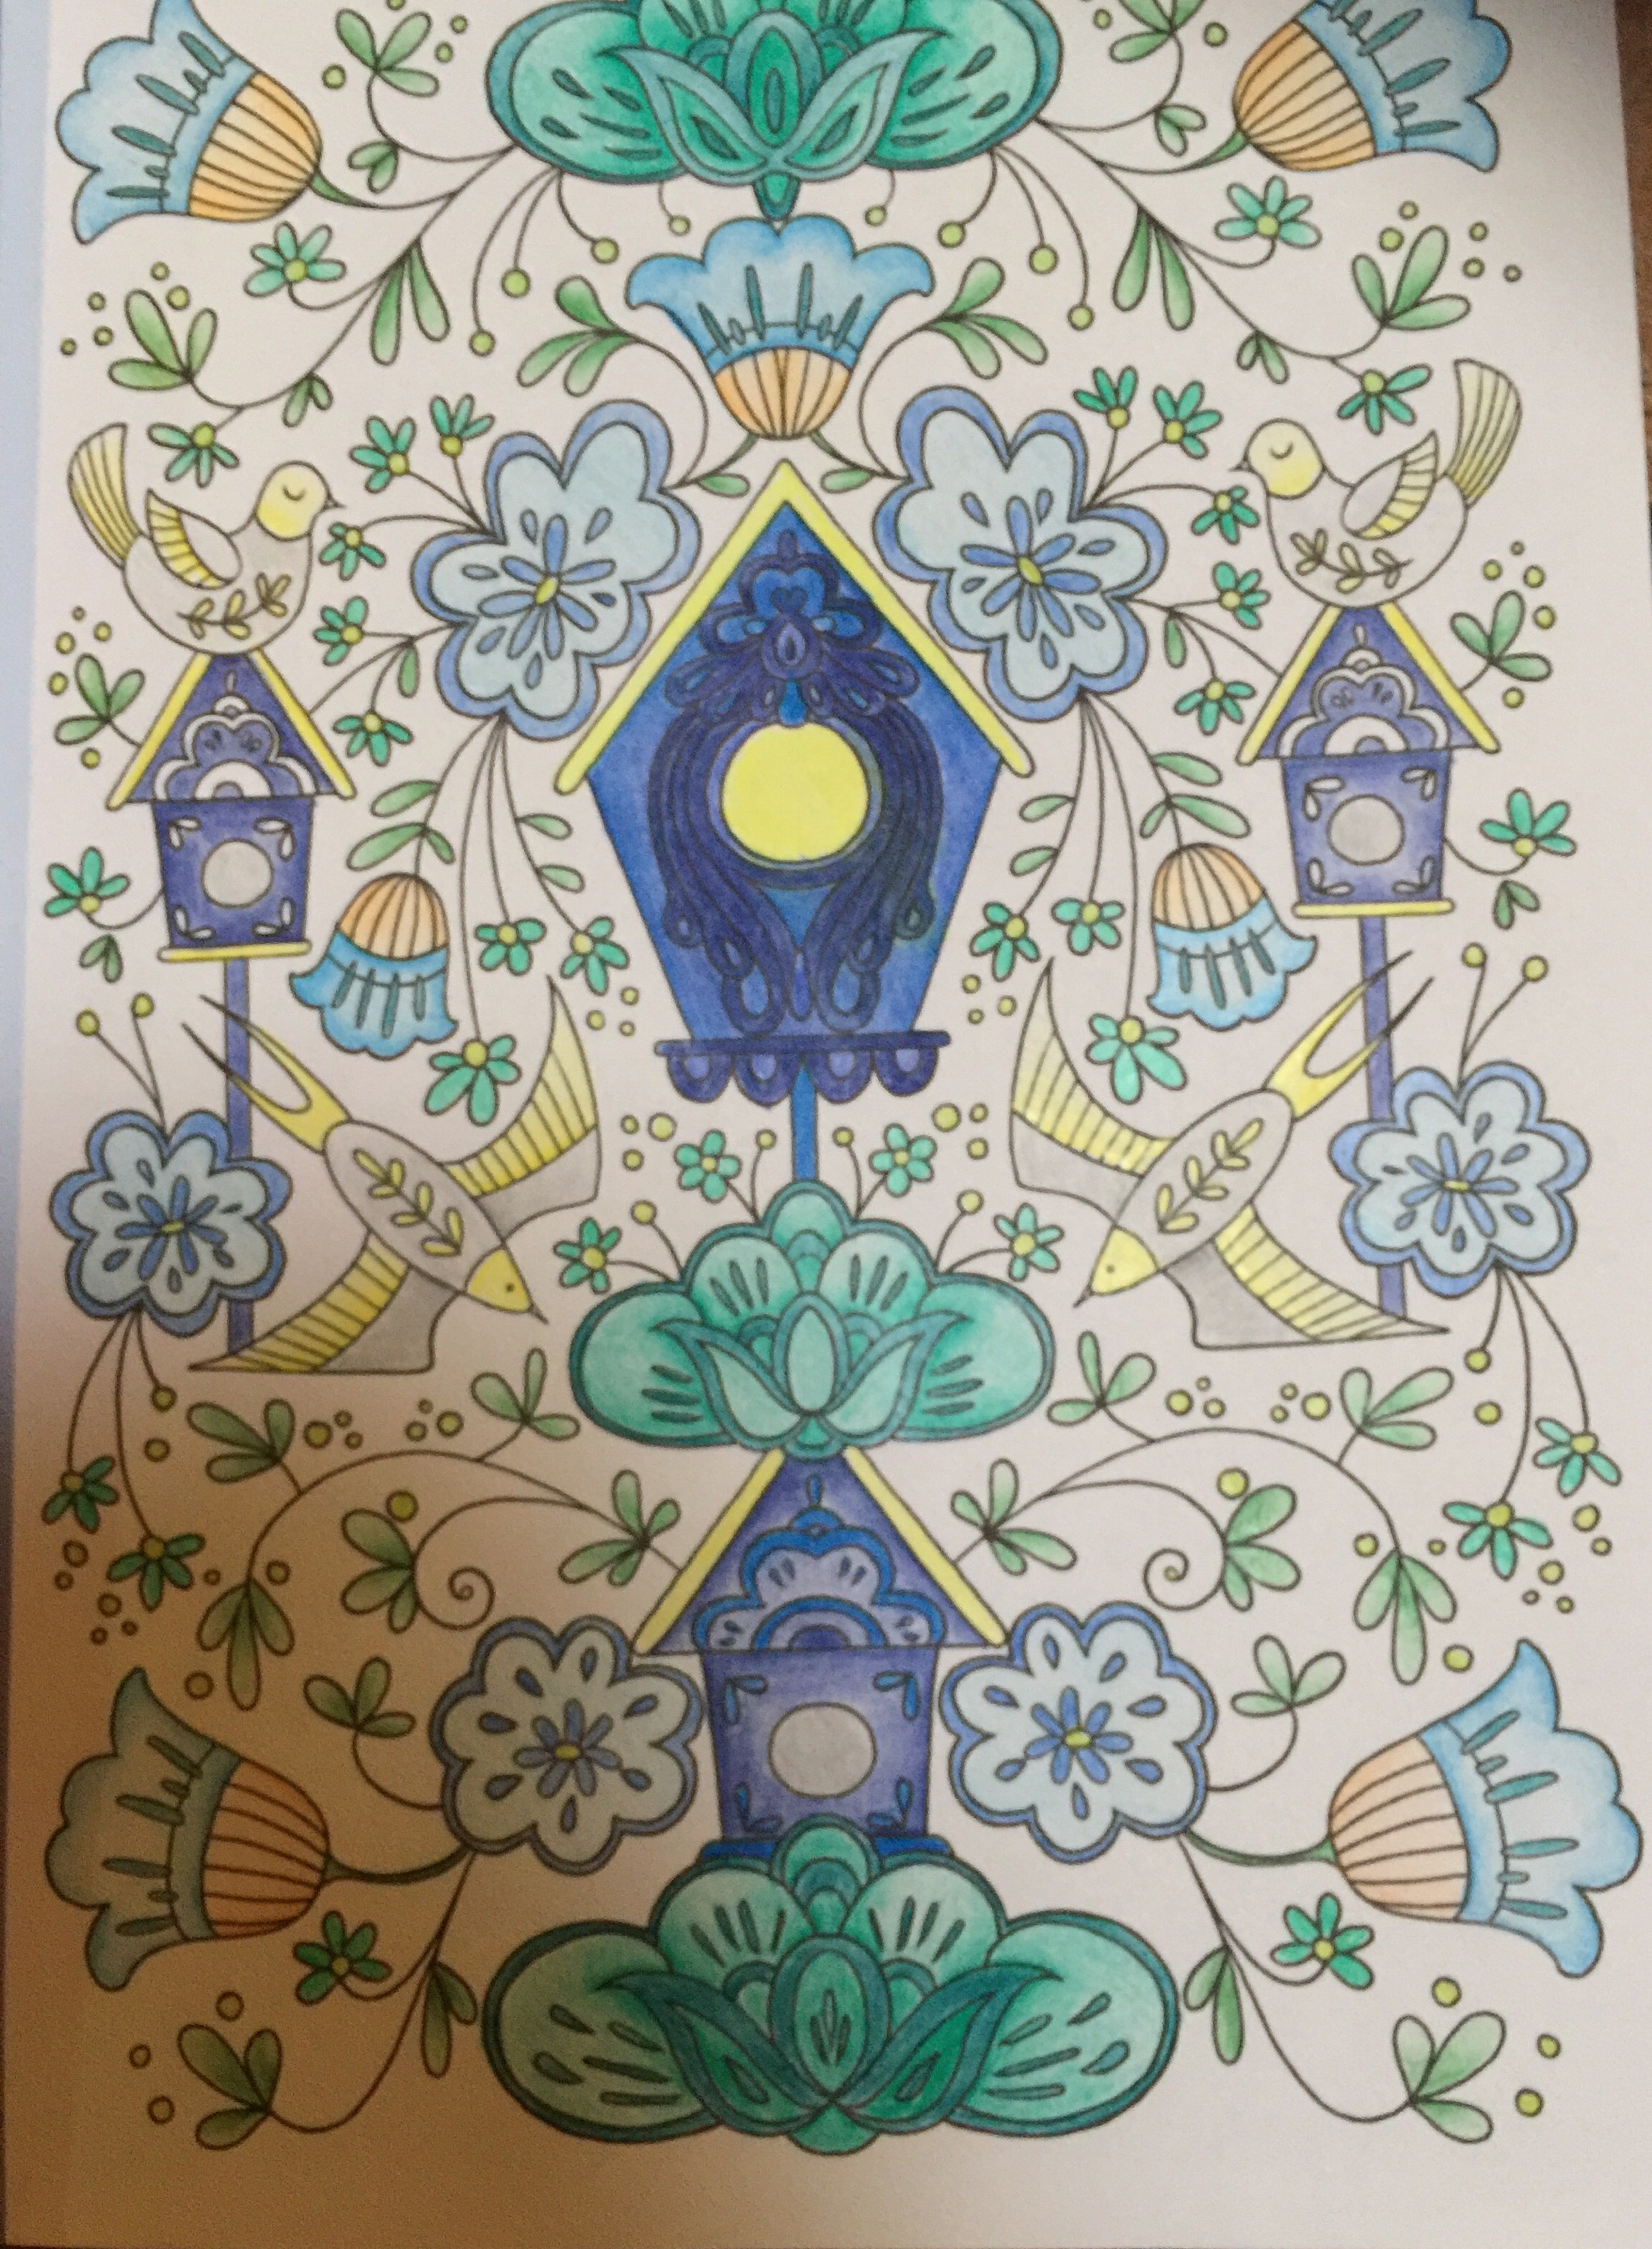 Creative Colouring Patterns : Creative colouring for grown ups scandinavian folk